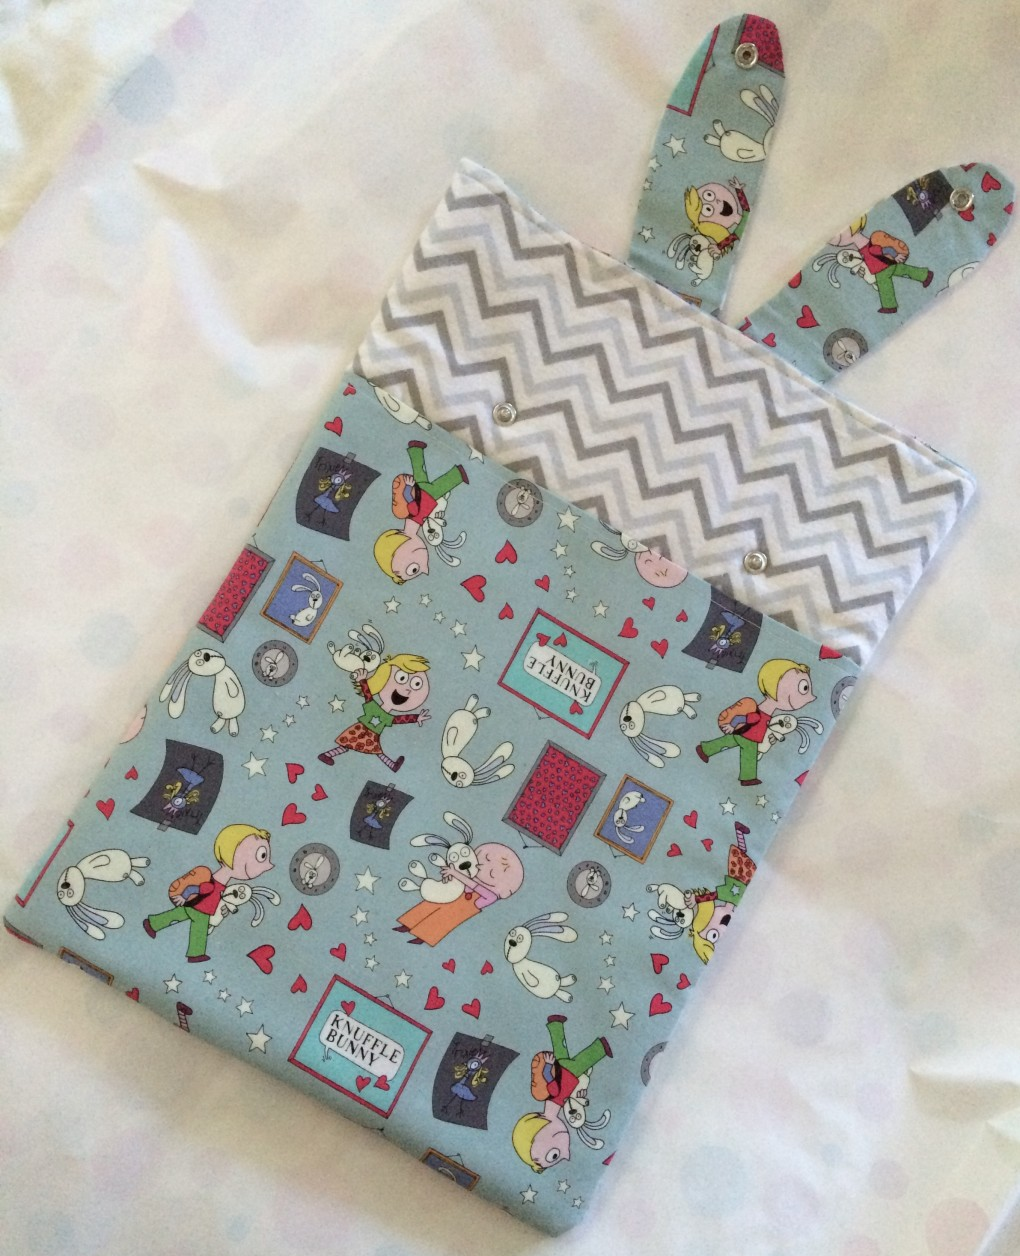 Handmade Knuffle Bunny Laptop sleeve (ears up), photo by Heidi M. Kim